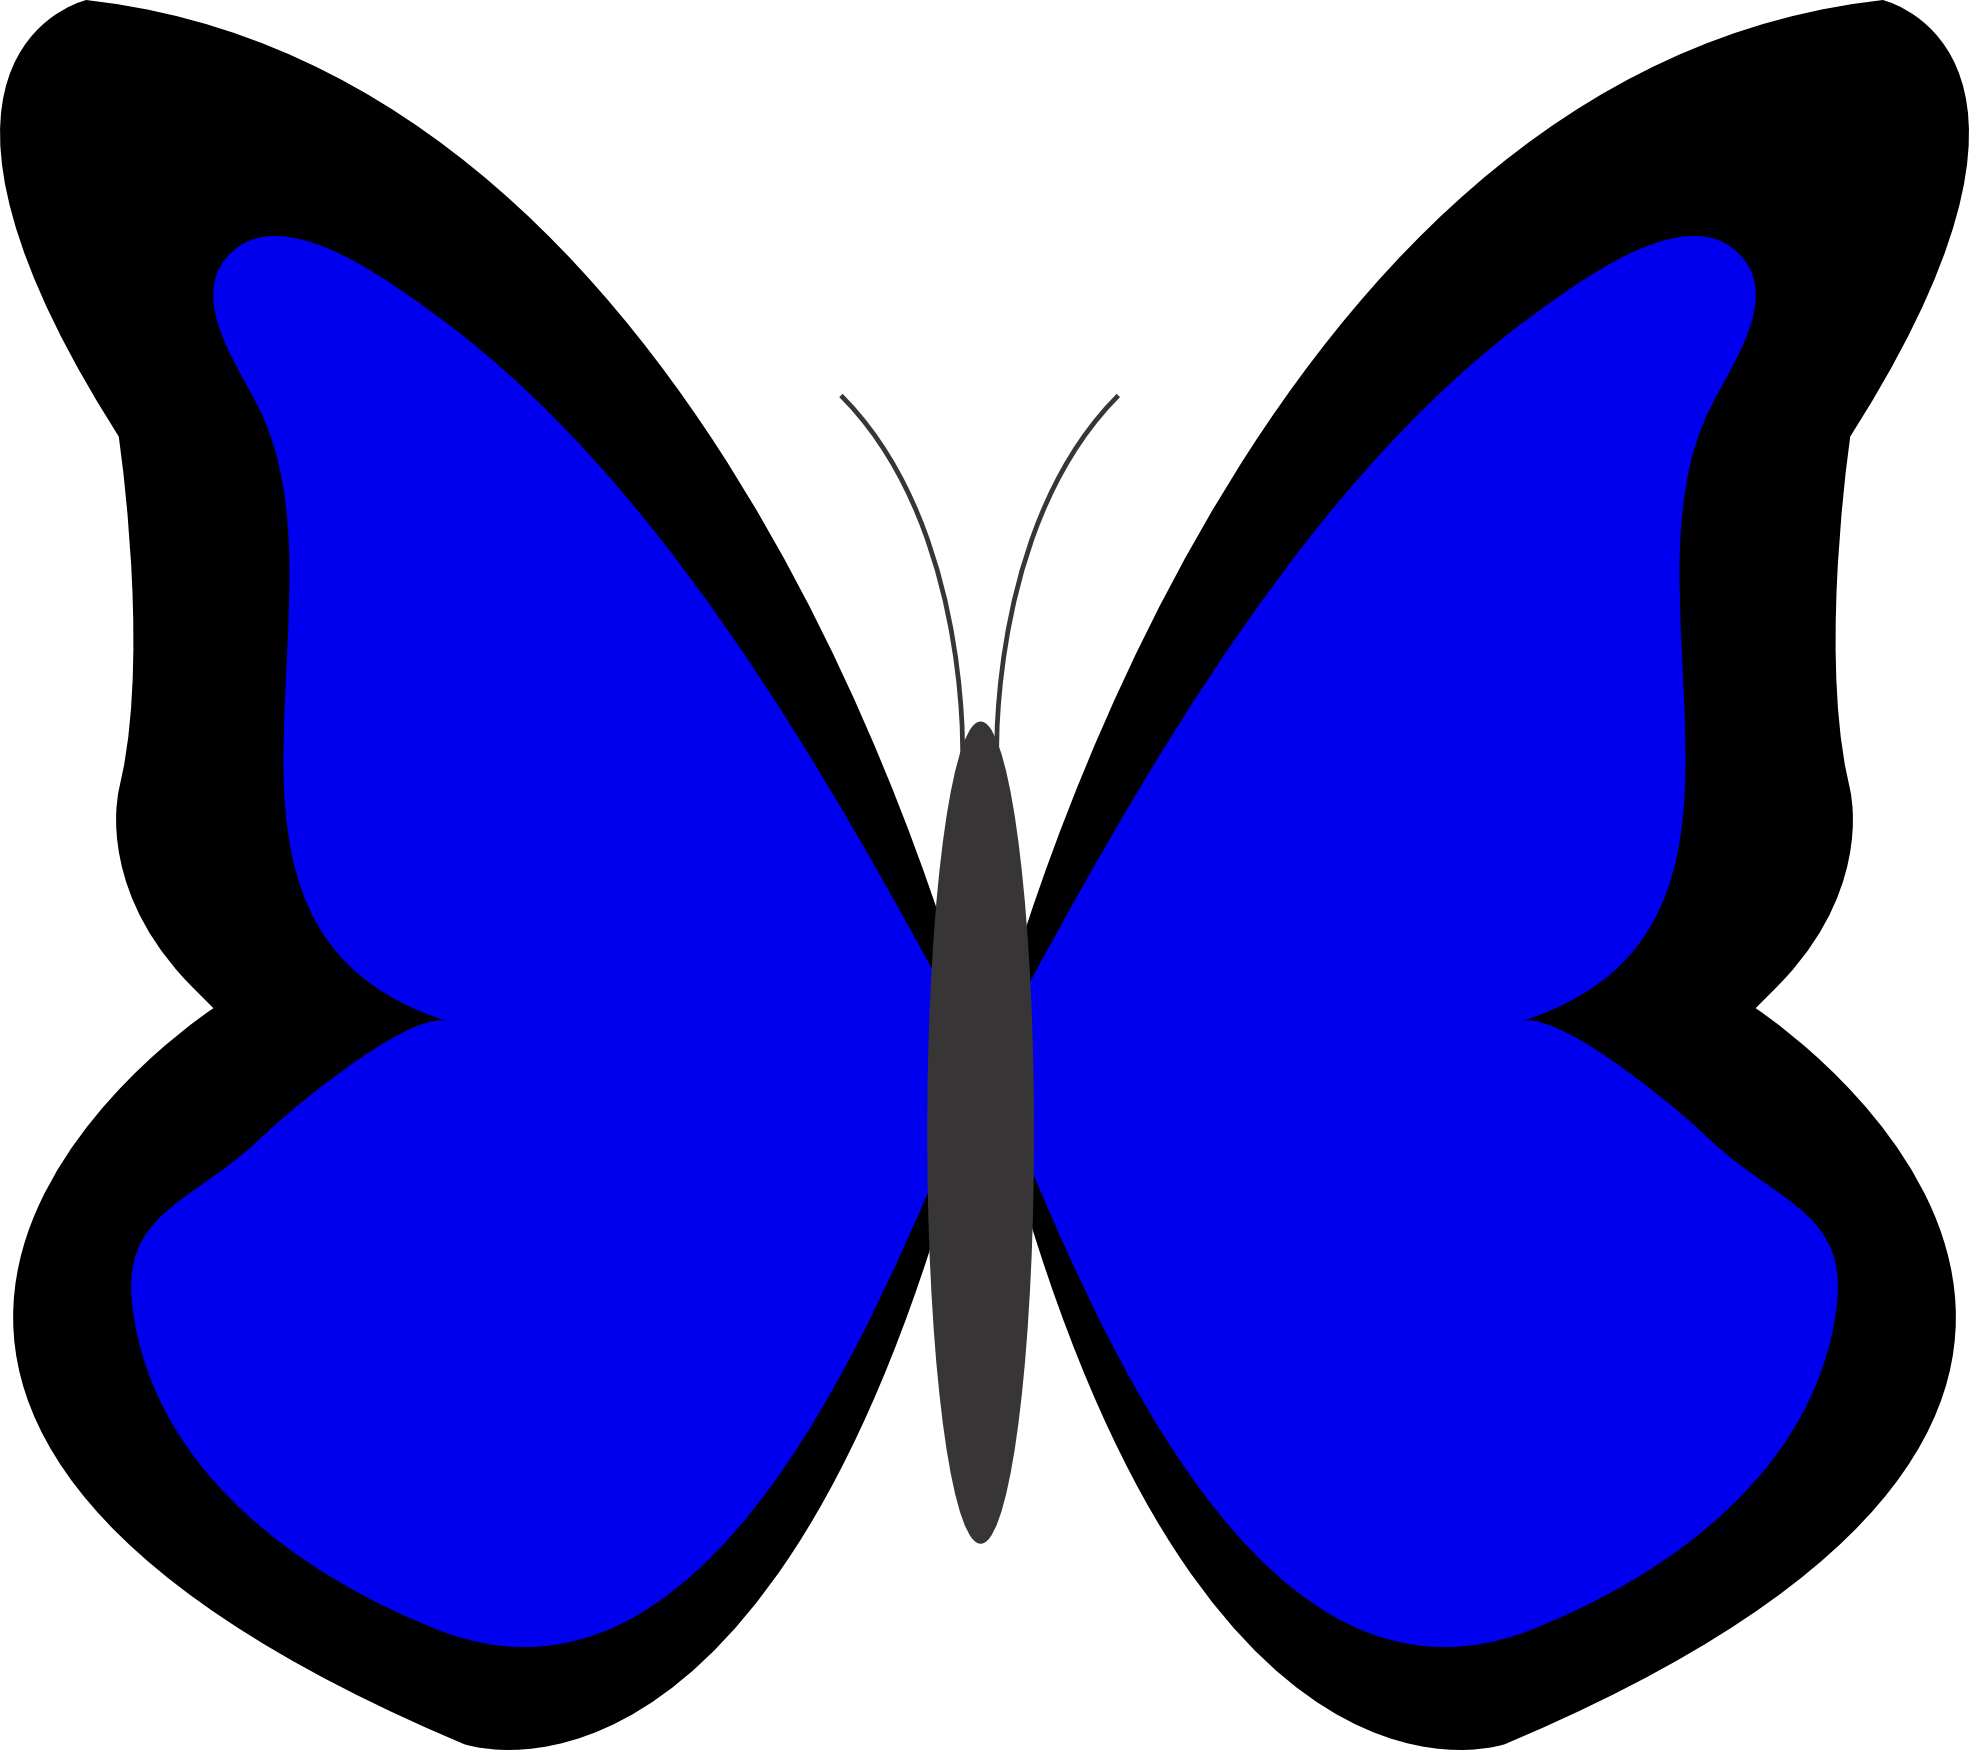 blue butterfly clipart clipart panda free clipart images rh clipartpanda com free blue butterfly clipart blue morpho butterfly clipart